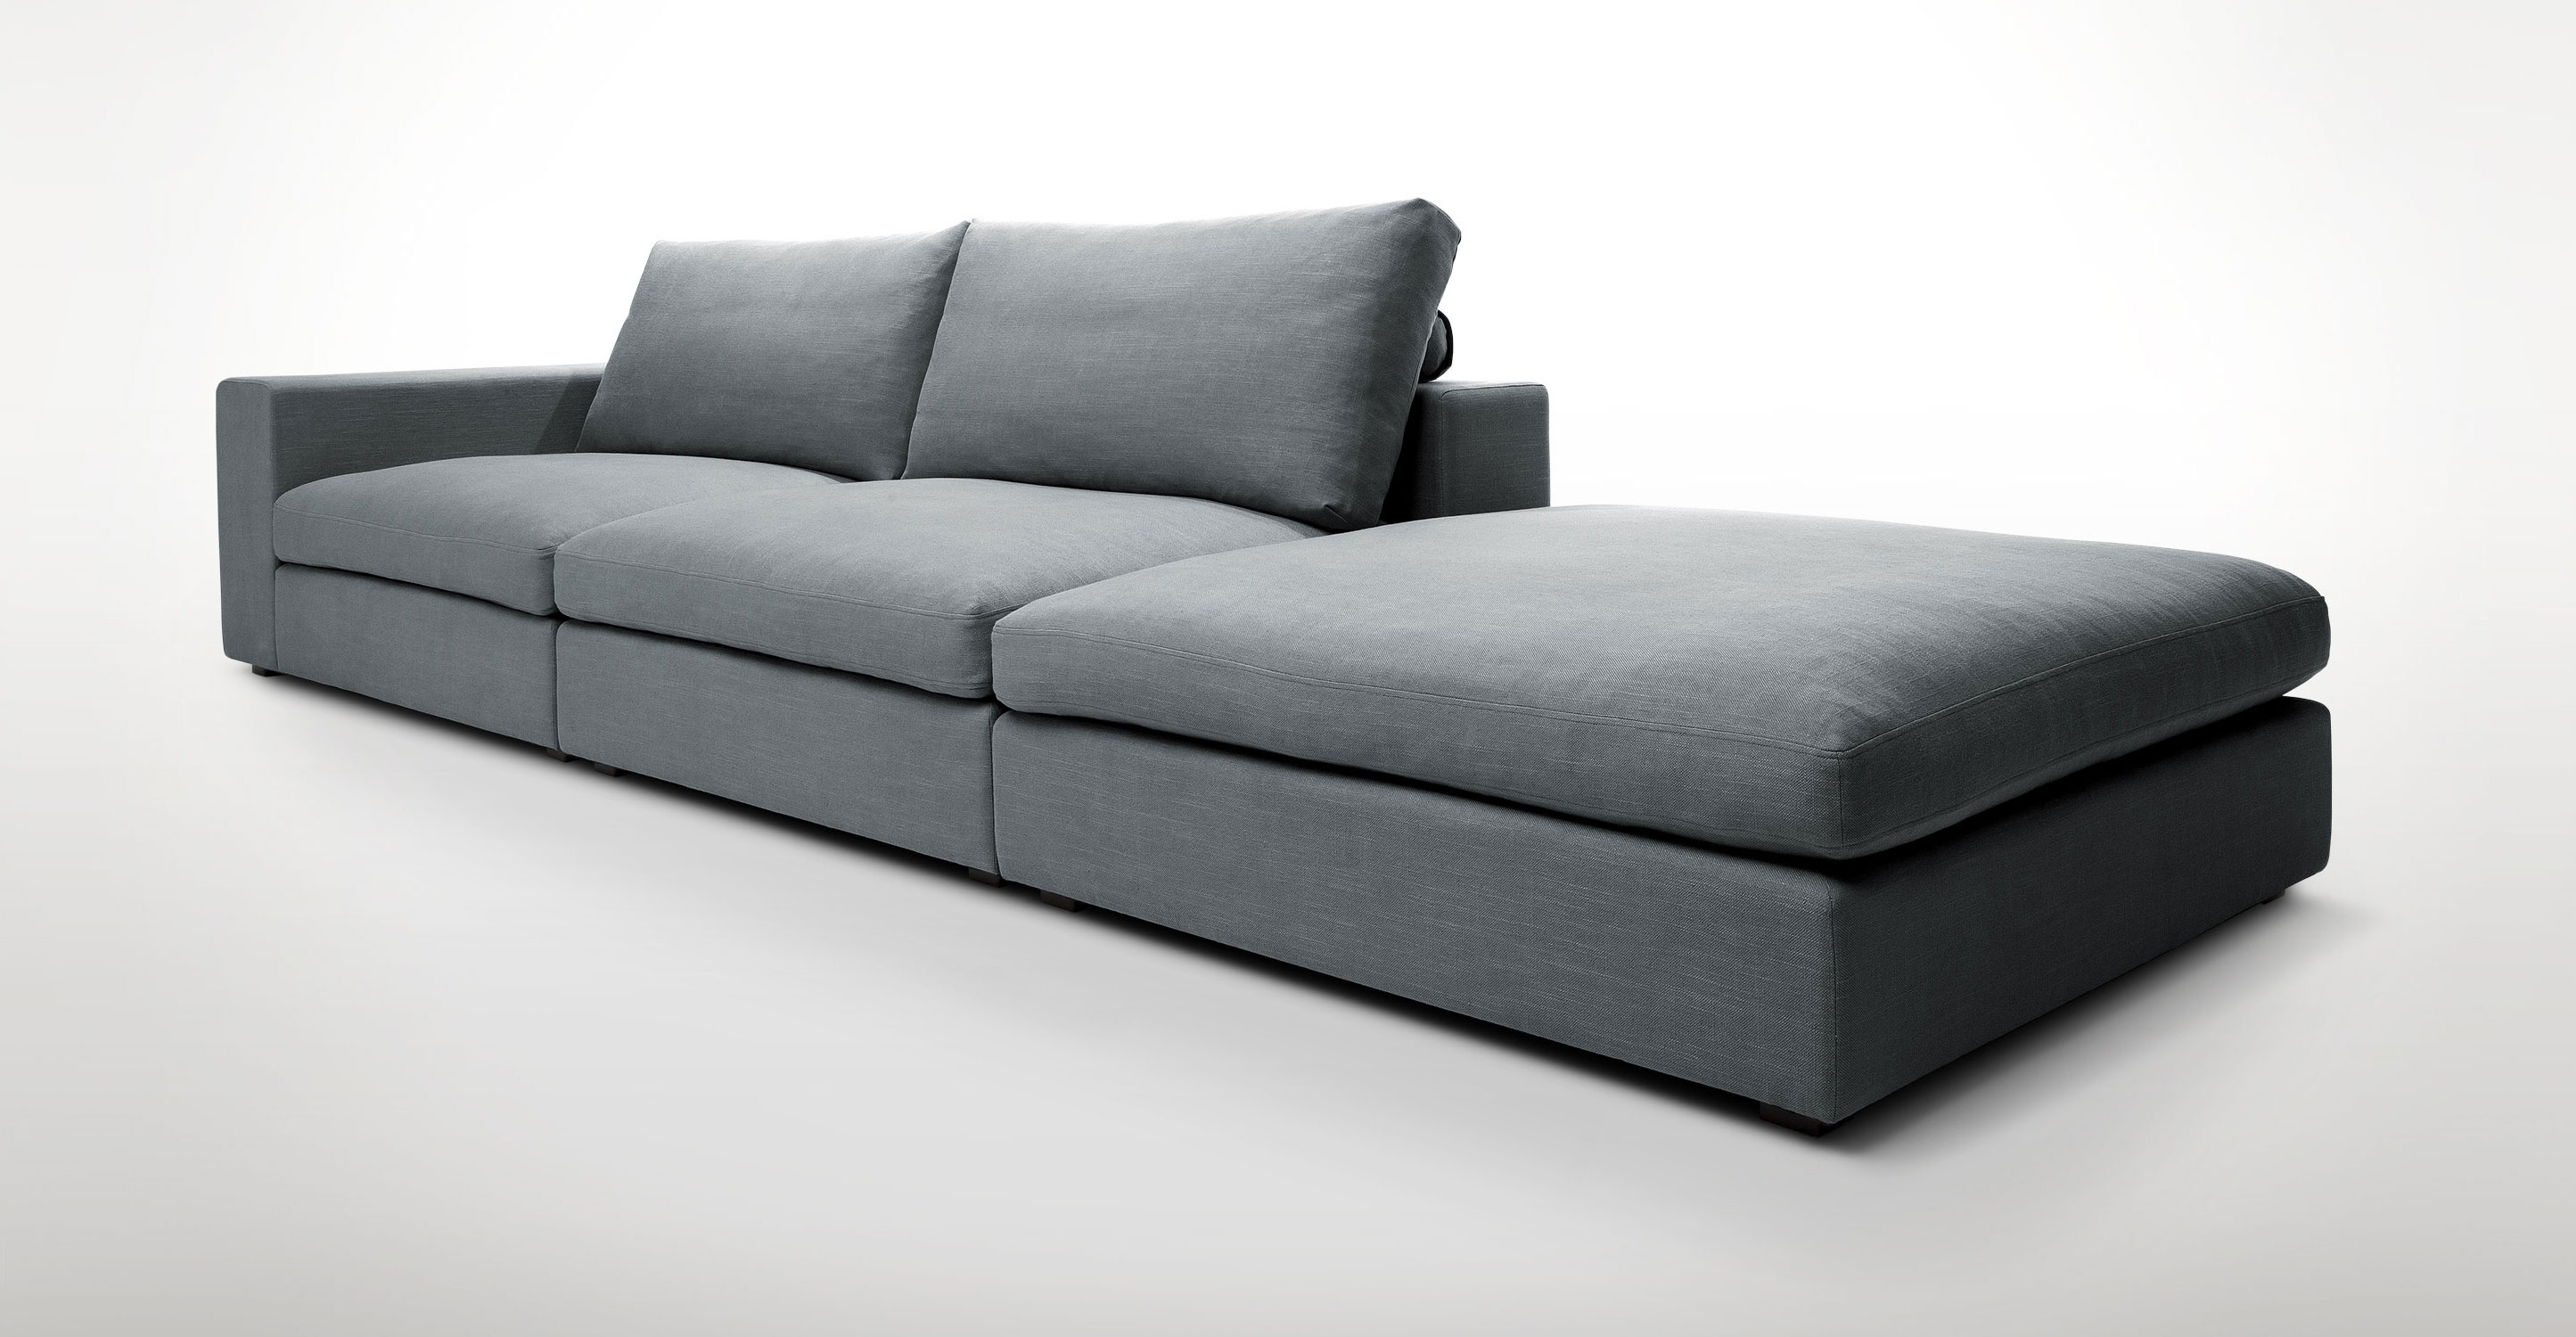 Most Current Sectional Sofas In Hyderabad Pertaining To Furniture : 2 Up Modular Sofa Modular Sofa Plans Sofa Set (View 14 of 20)